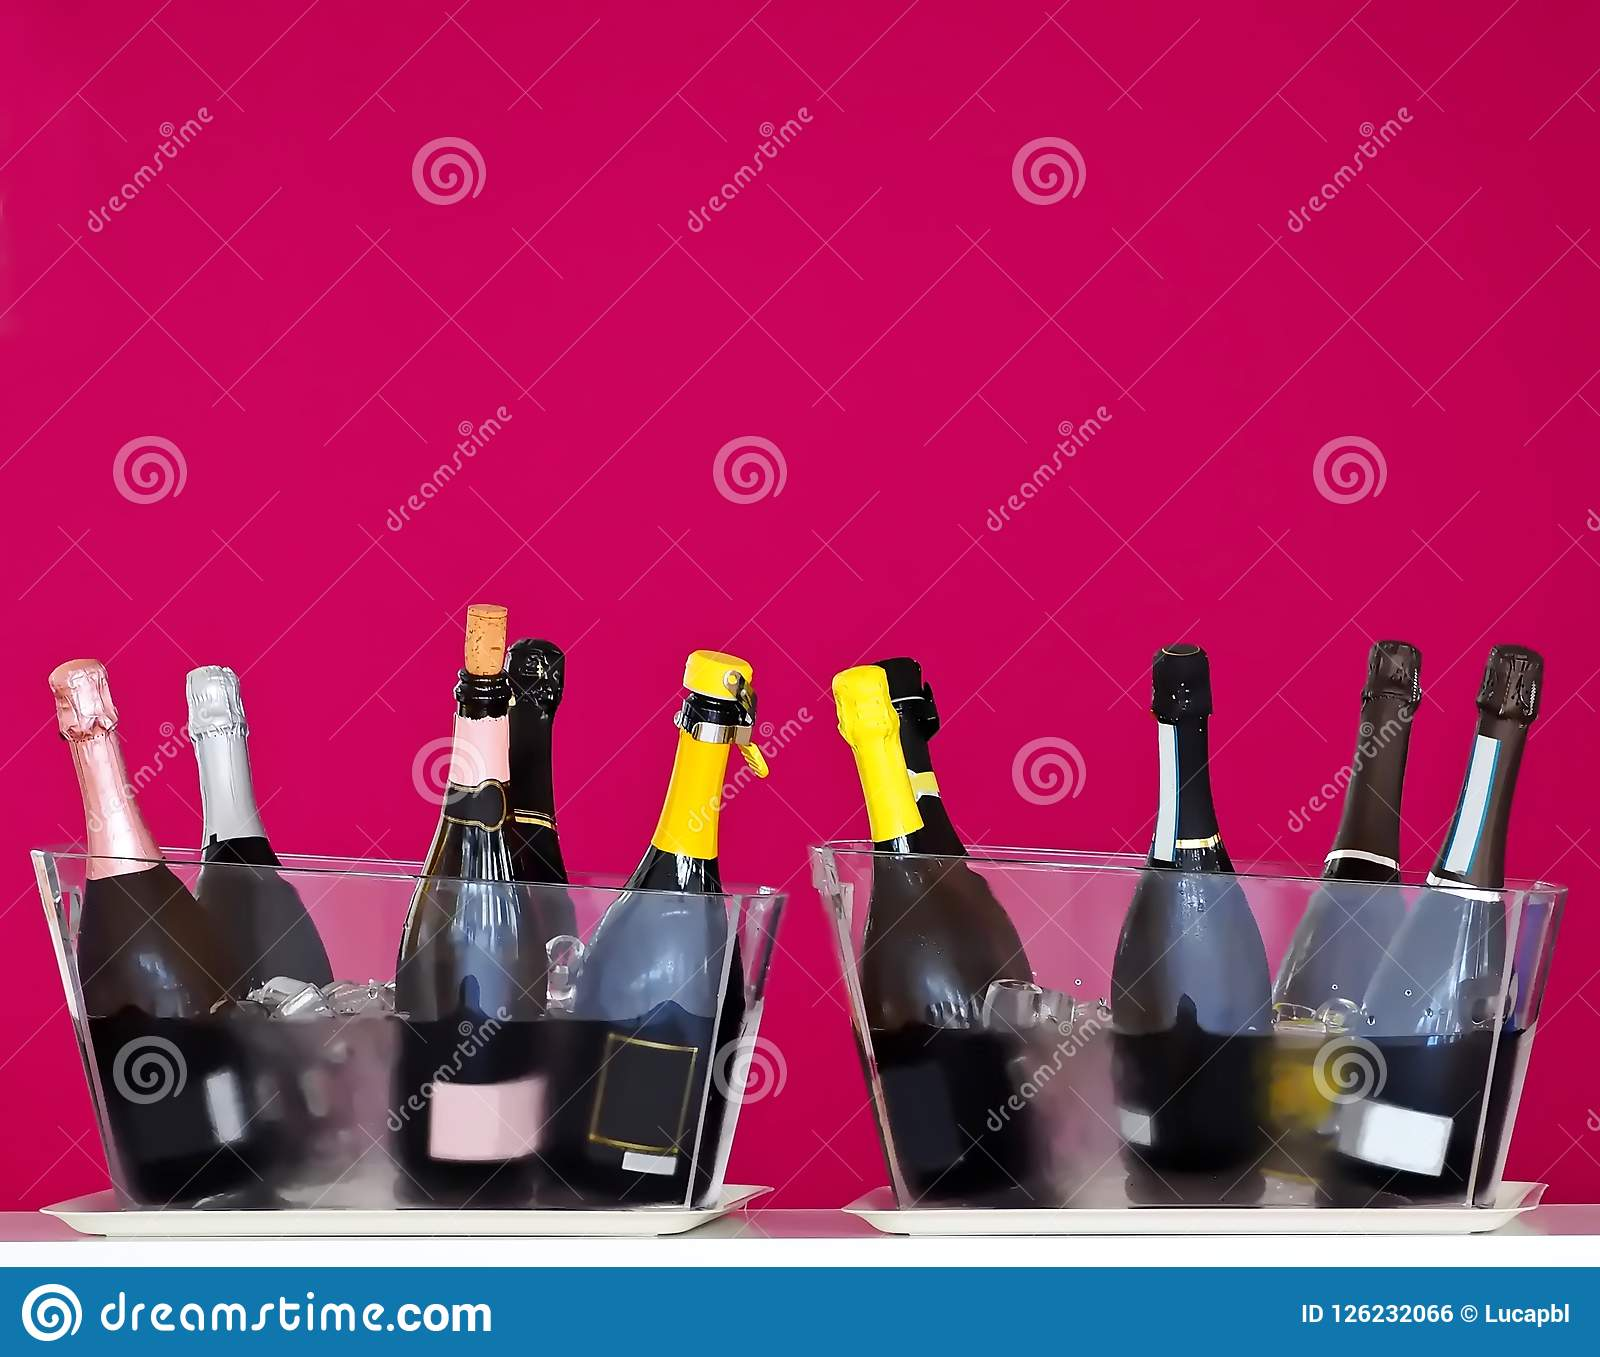 Sparkling wine bottles in two transparent ice buckets at a wine tasting. Purple wall background